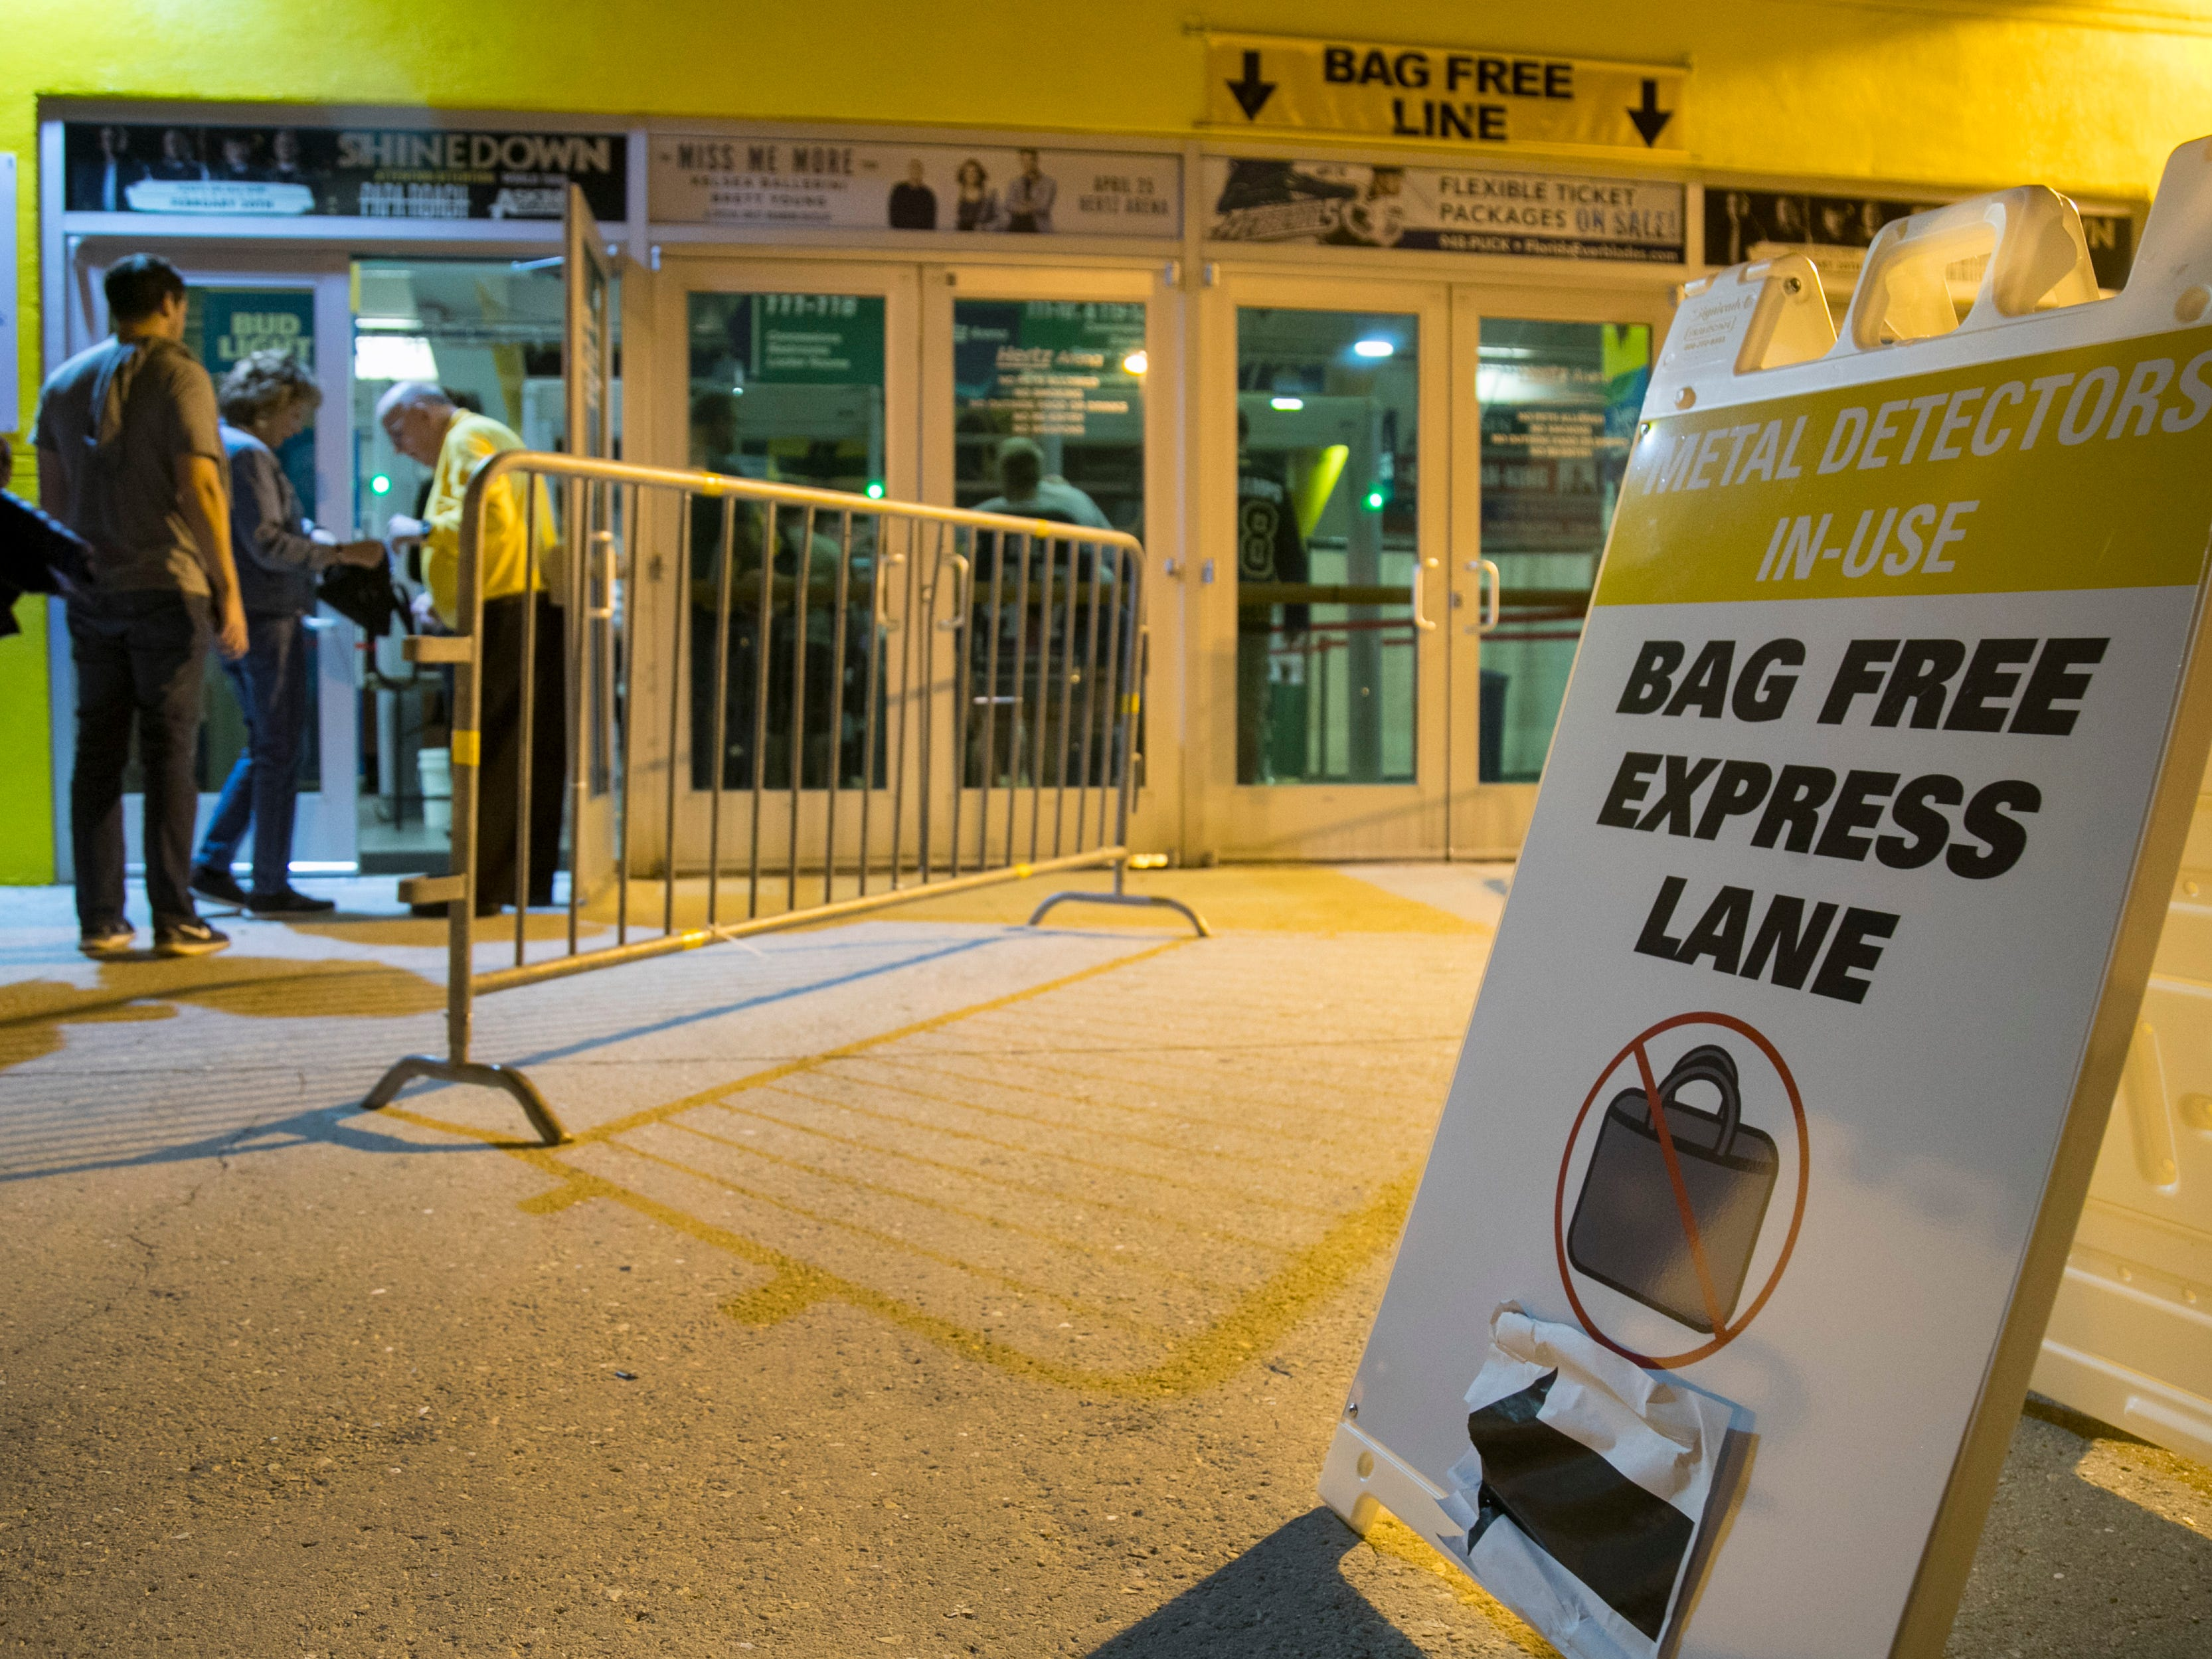 Everblades fans enter Hertz Arena in Estero on Wednesday, Jan. 2, 2019. They had bags checked and had to pass through metal detectors. Some were required to take large bags back to their vehicles.